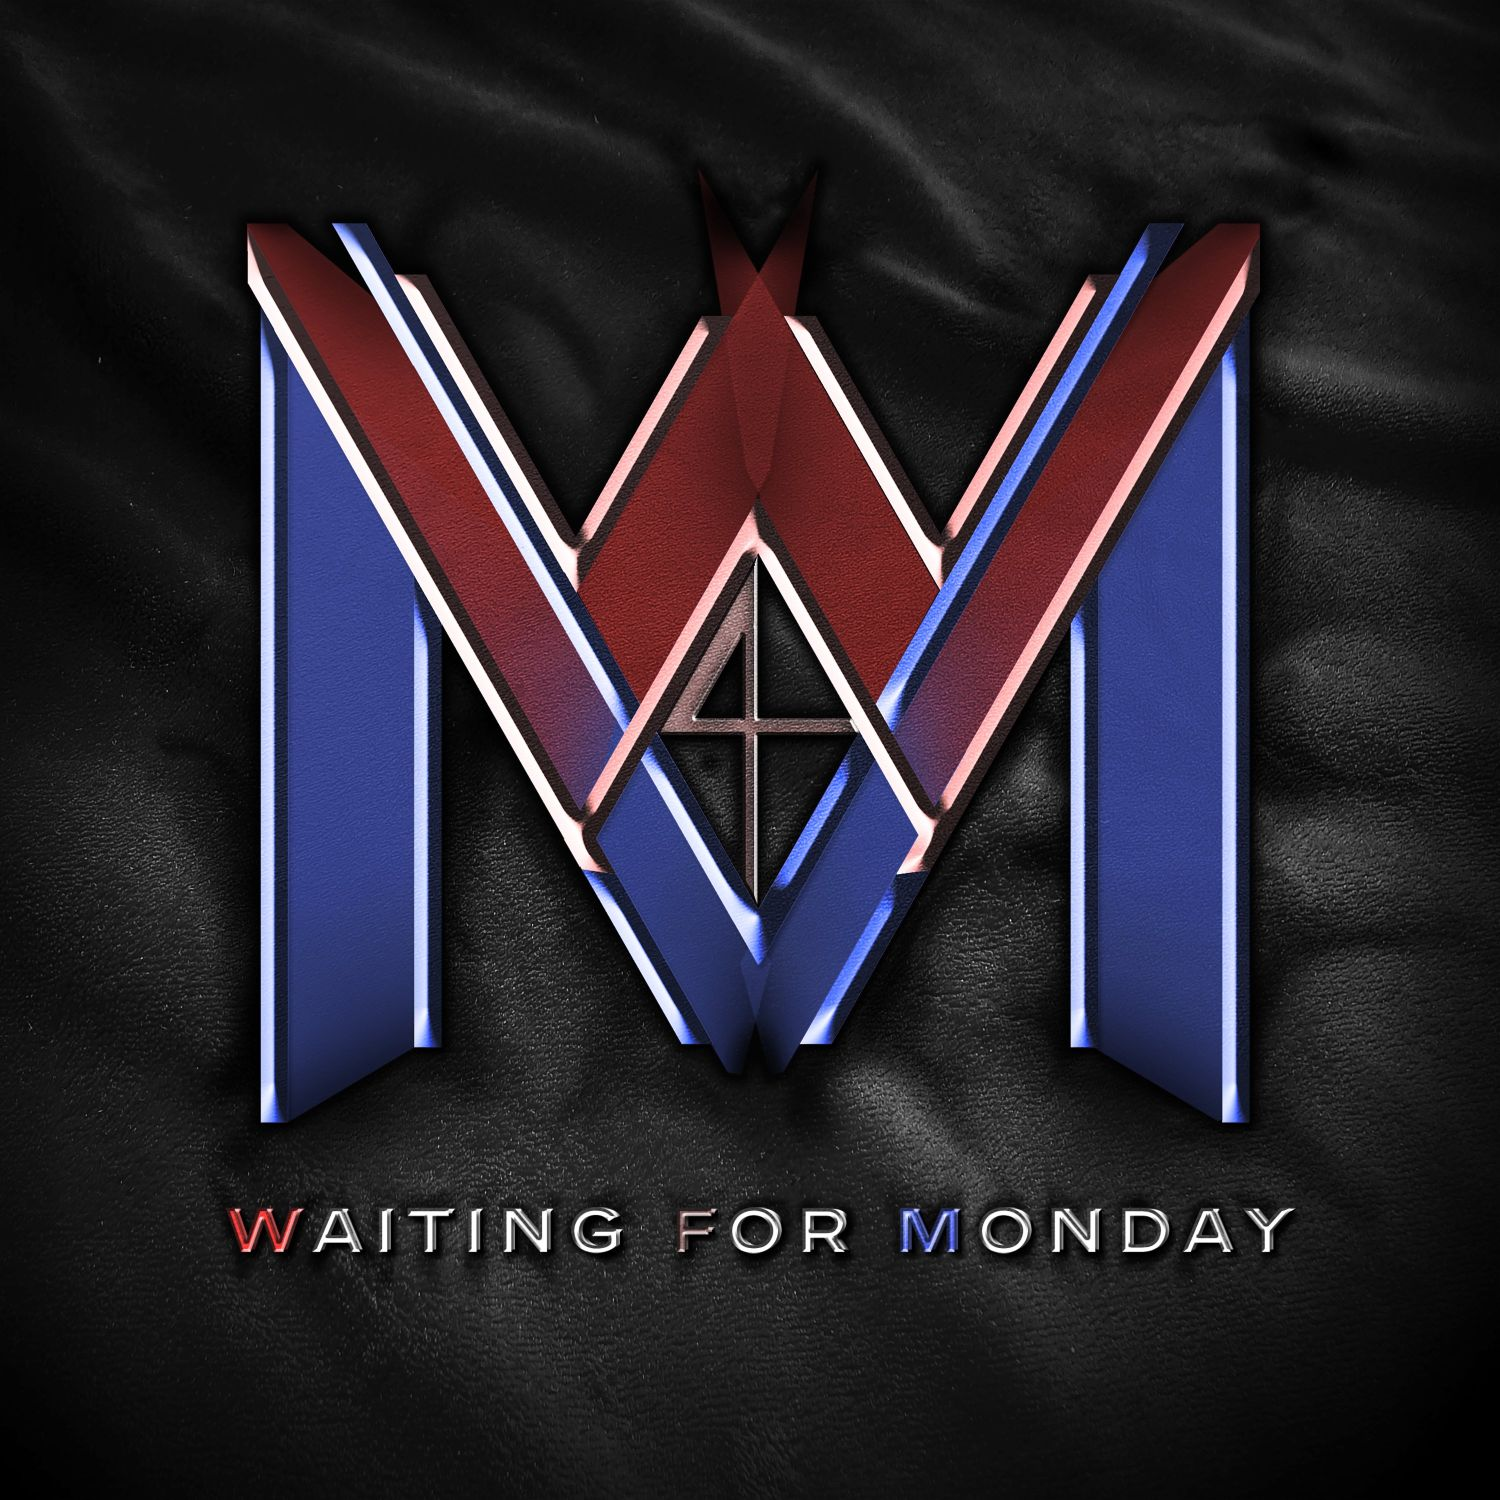 WAITING_FOR_MONDAY_cover_HI